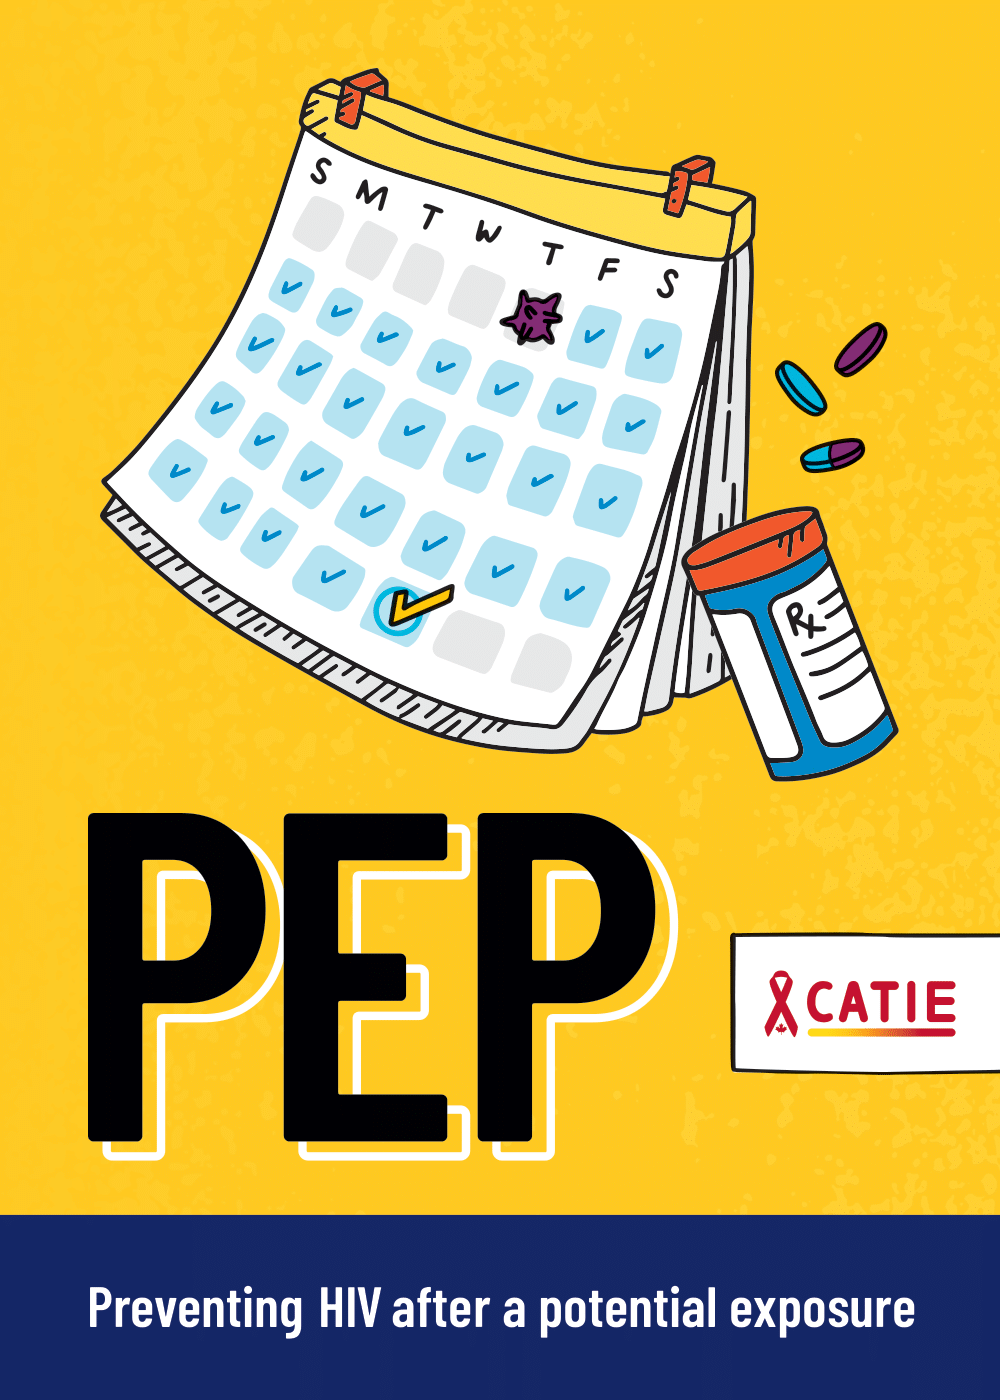 PEP: Preventing HIV after a potential exposure